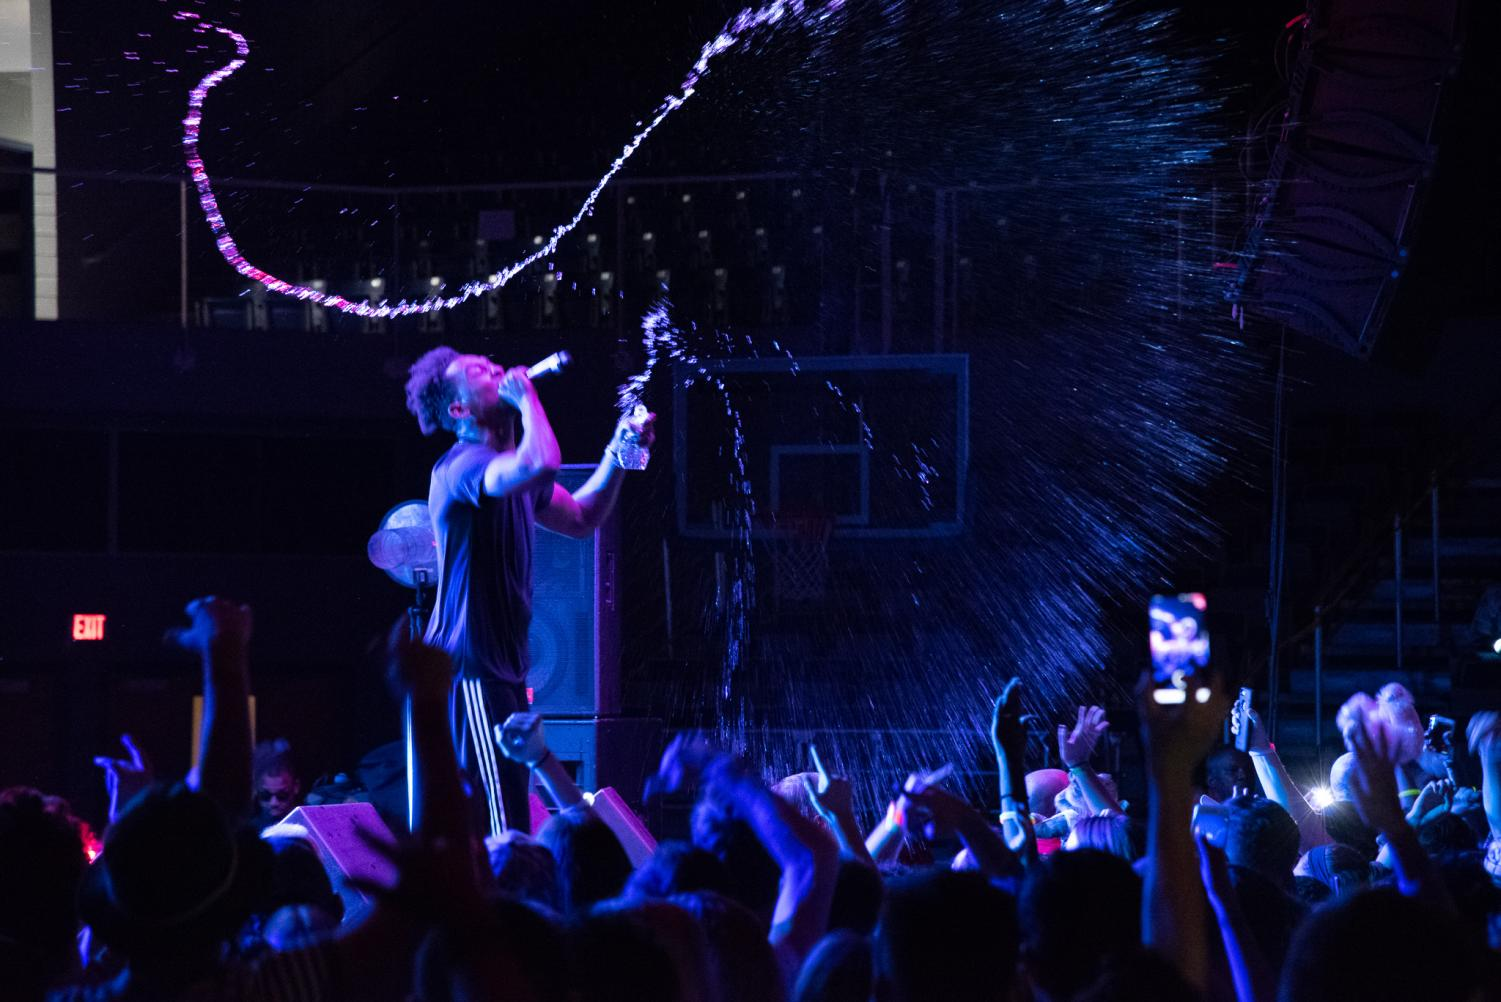 Desiigner+douses+the+crowd+in+water%0APhoto+by+Khorri+Newton